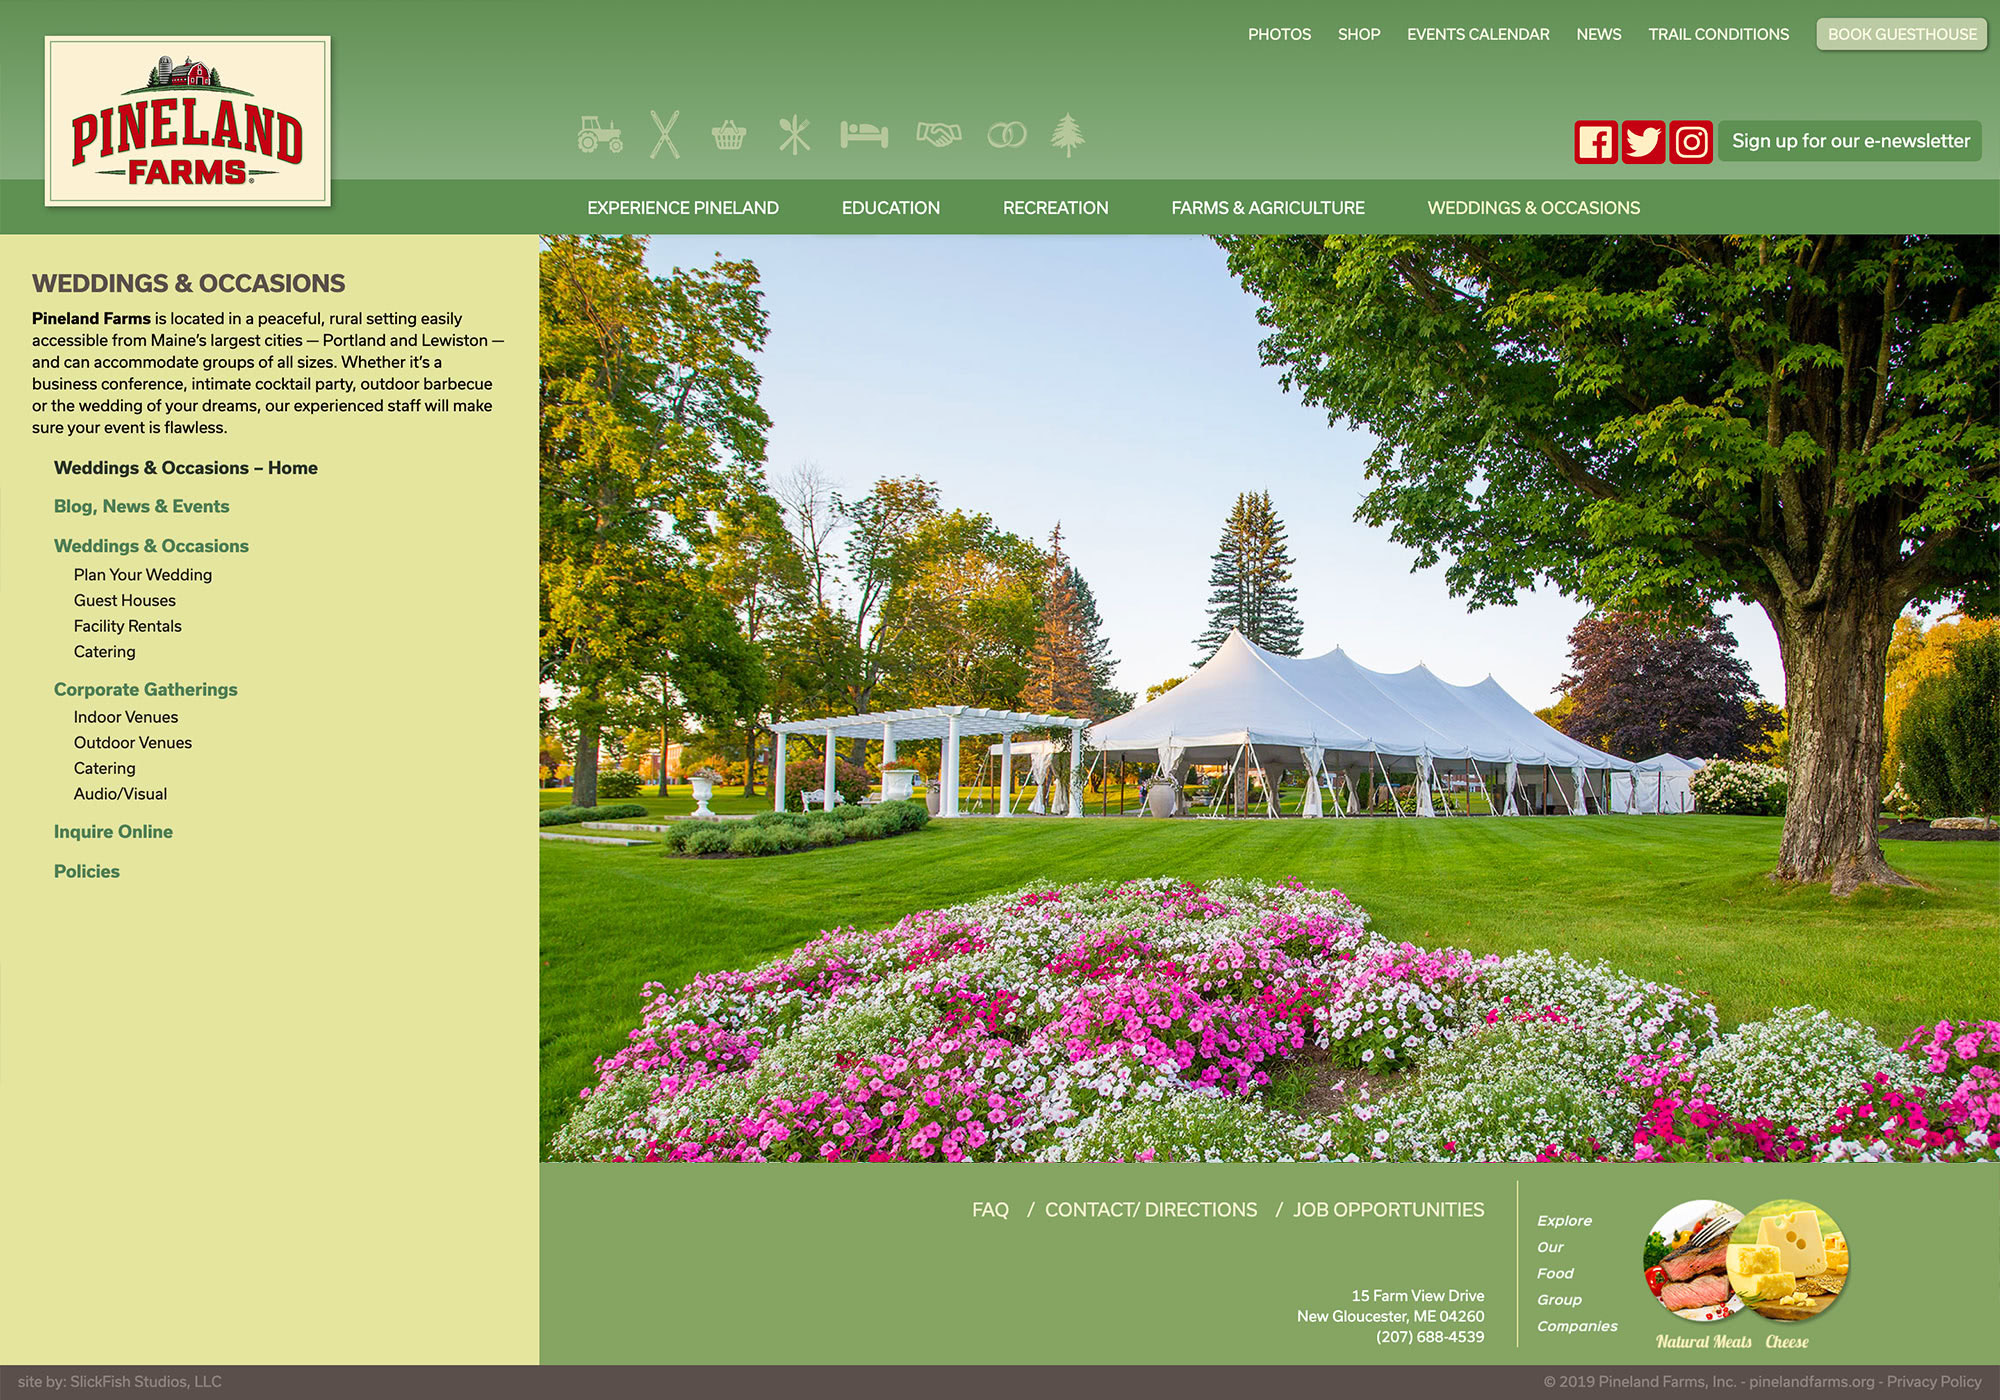 Pineland Farms Weddings landing page by slickfish